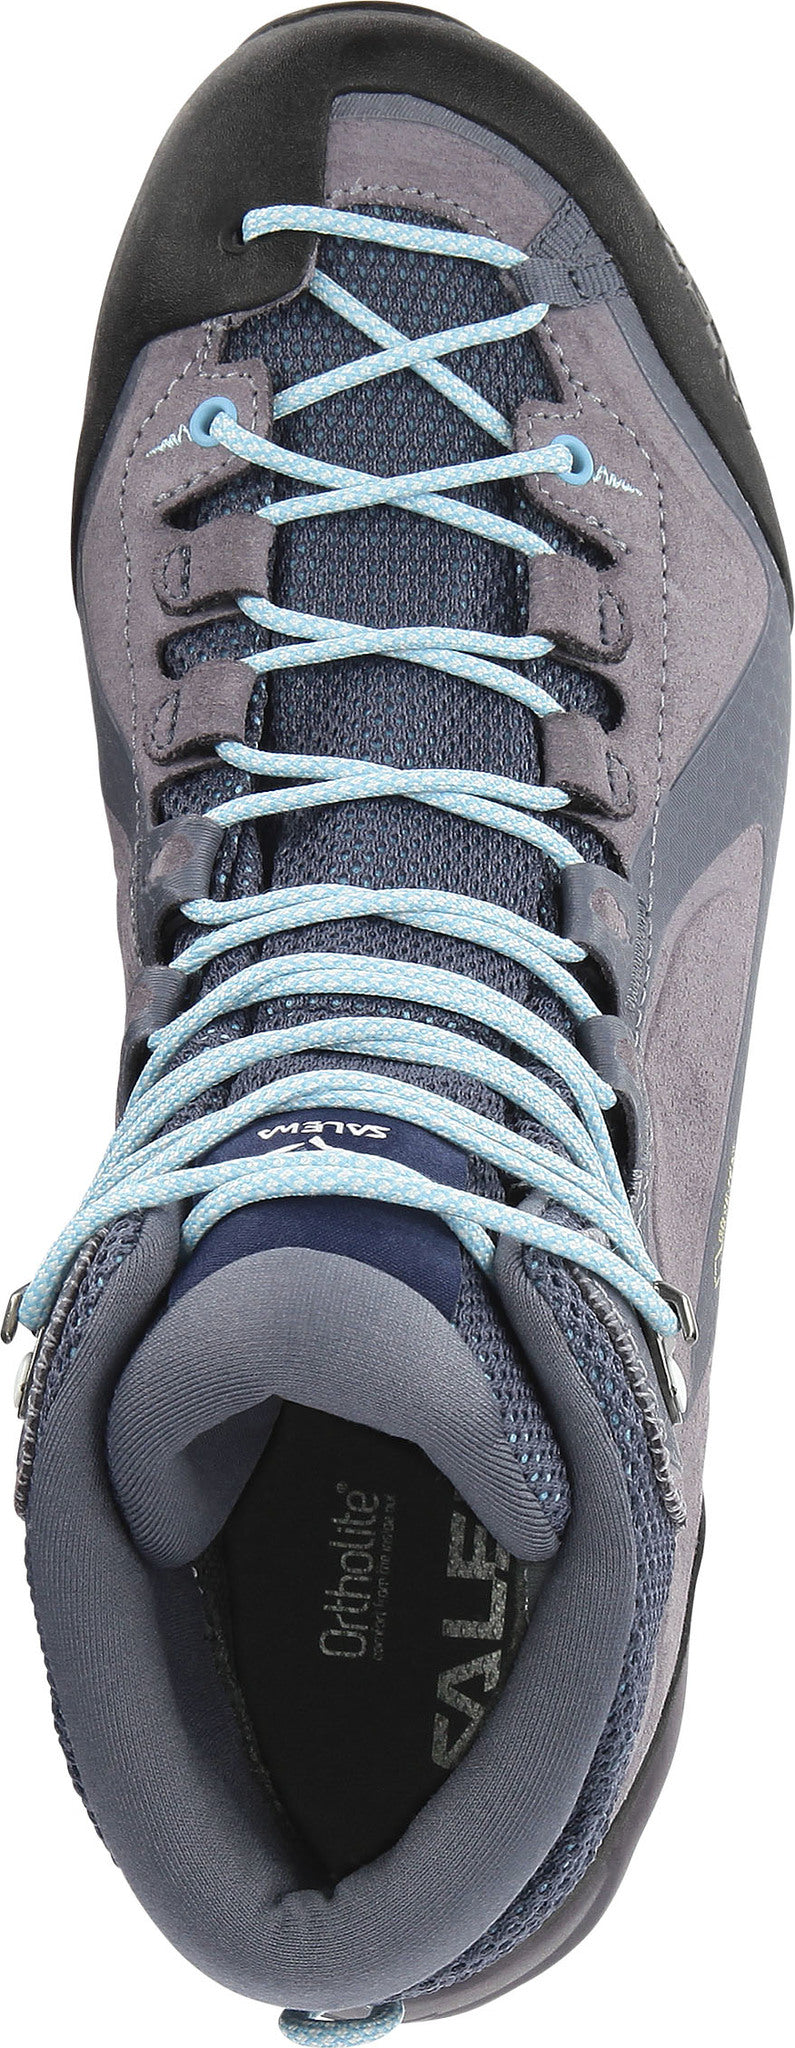 bf819ea09c034 Alpenviolet Mid GTX Hiking Boots - Women's